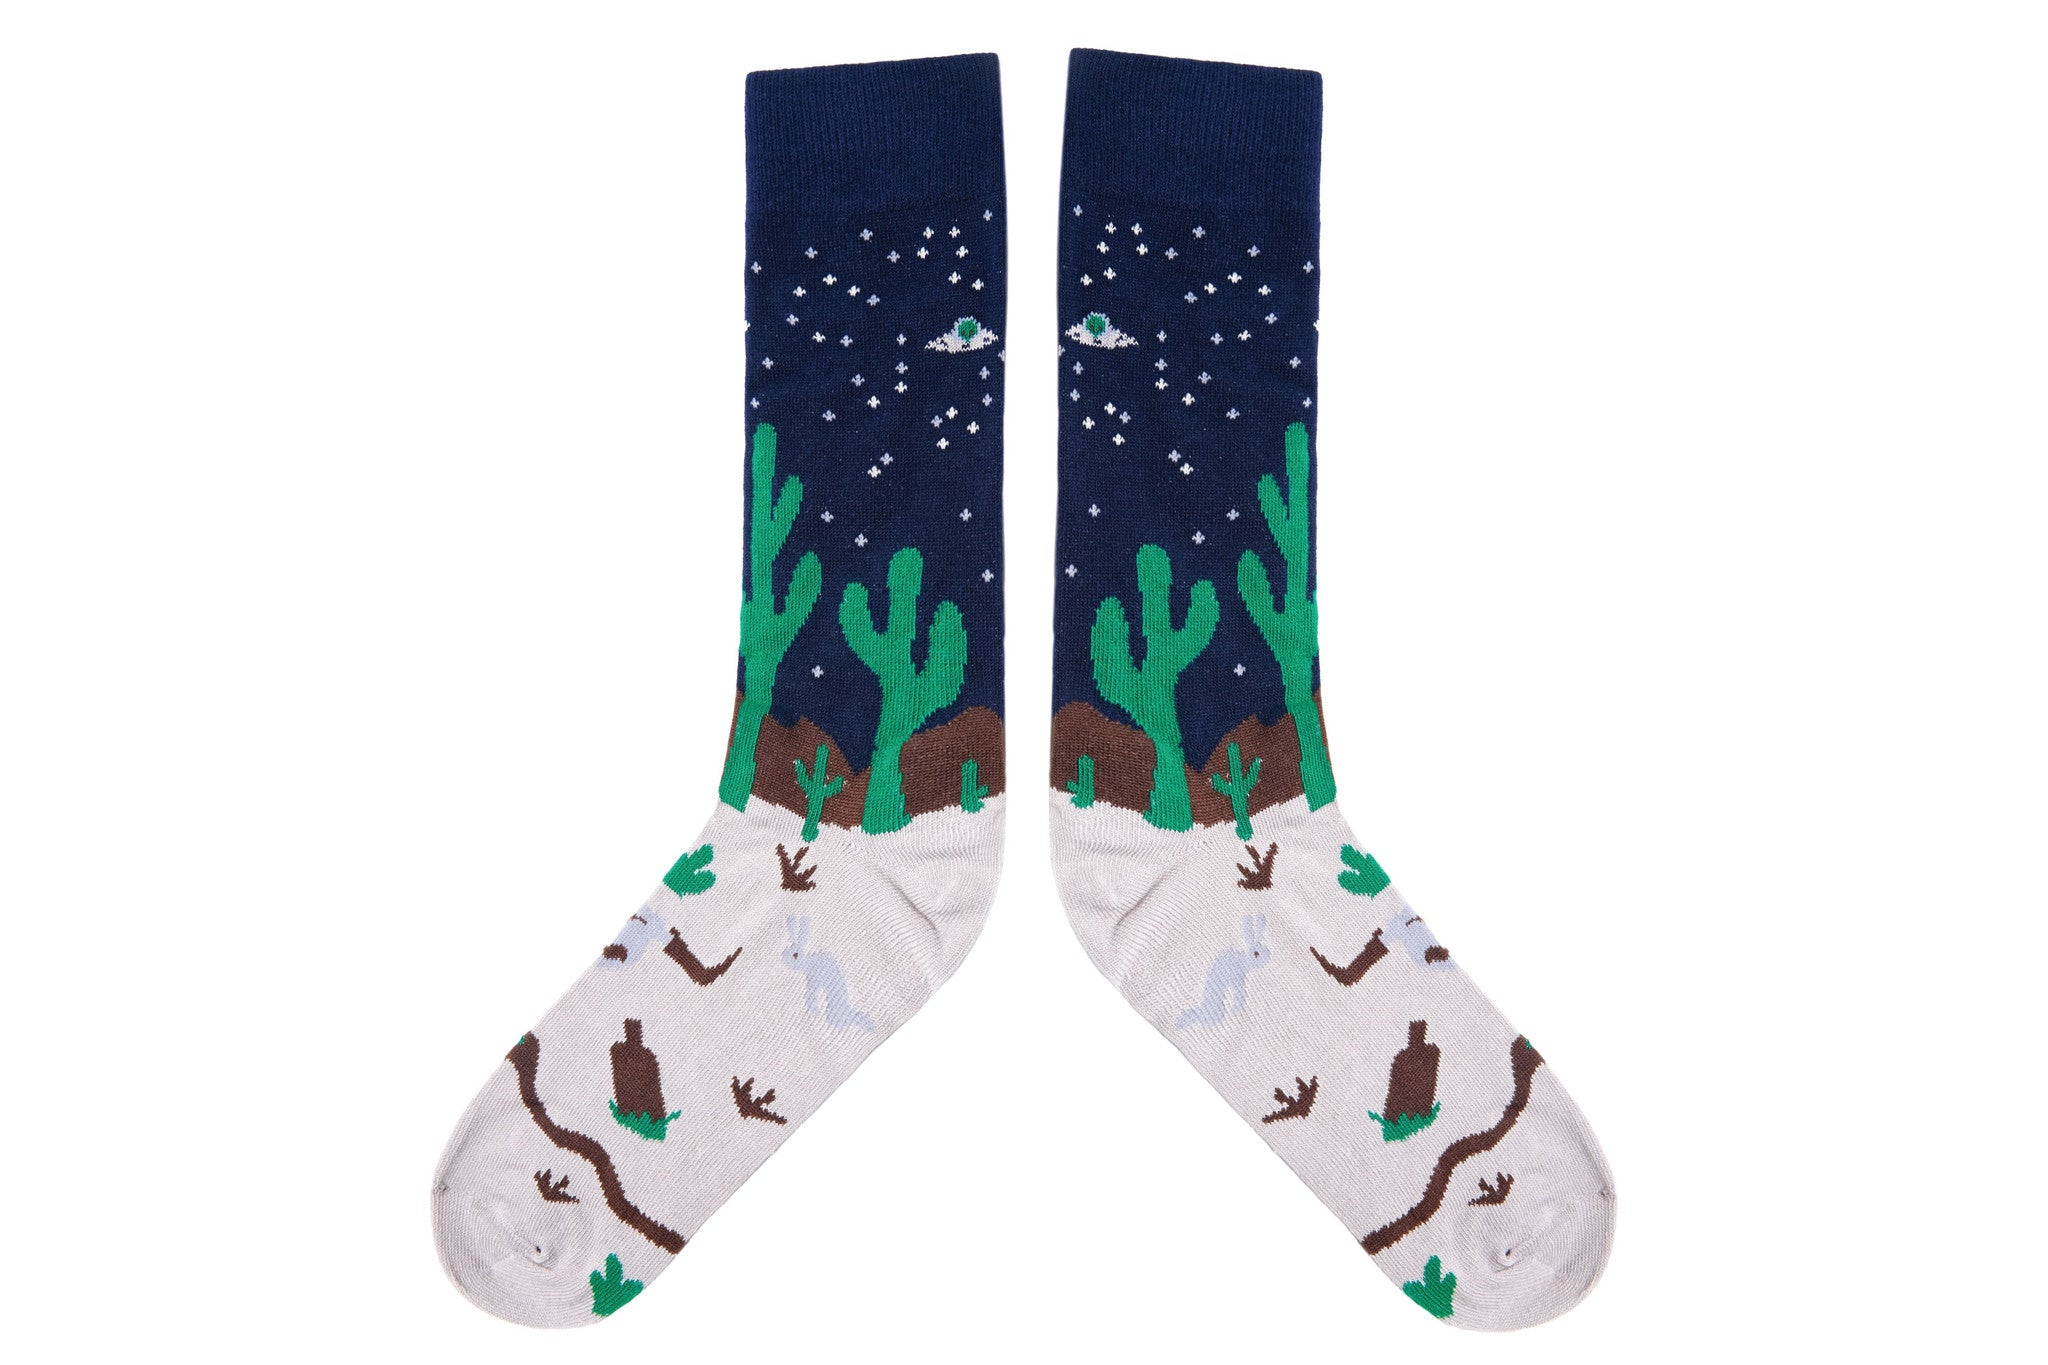 MIDNIGHT DESERT Socks